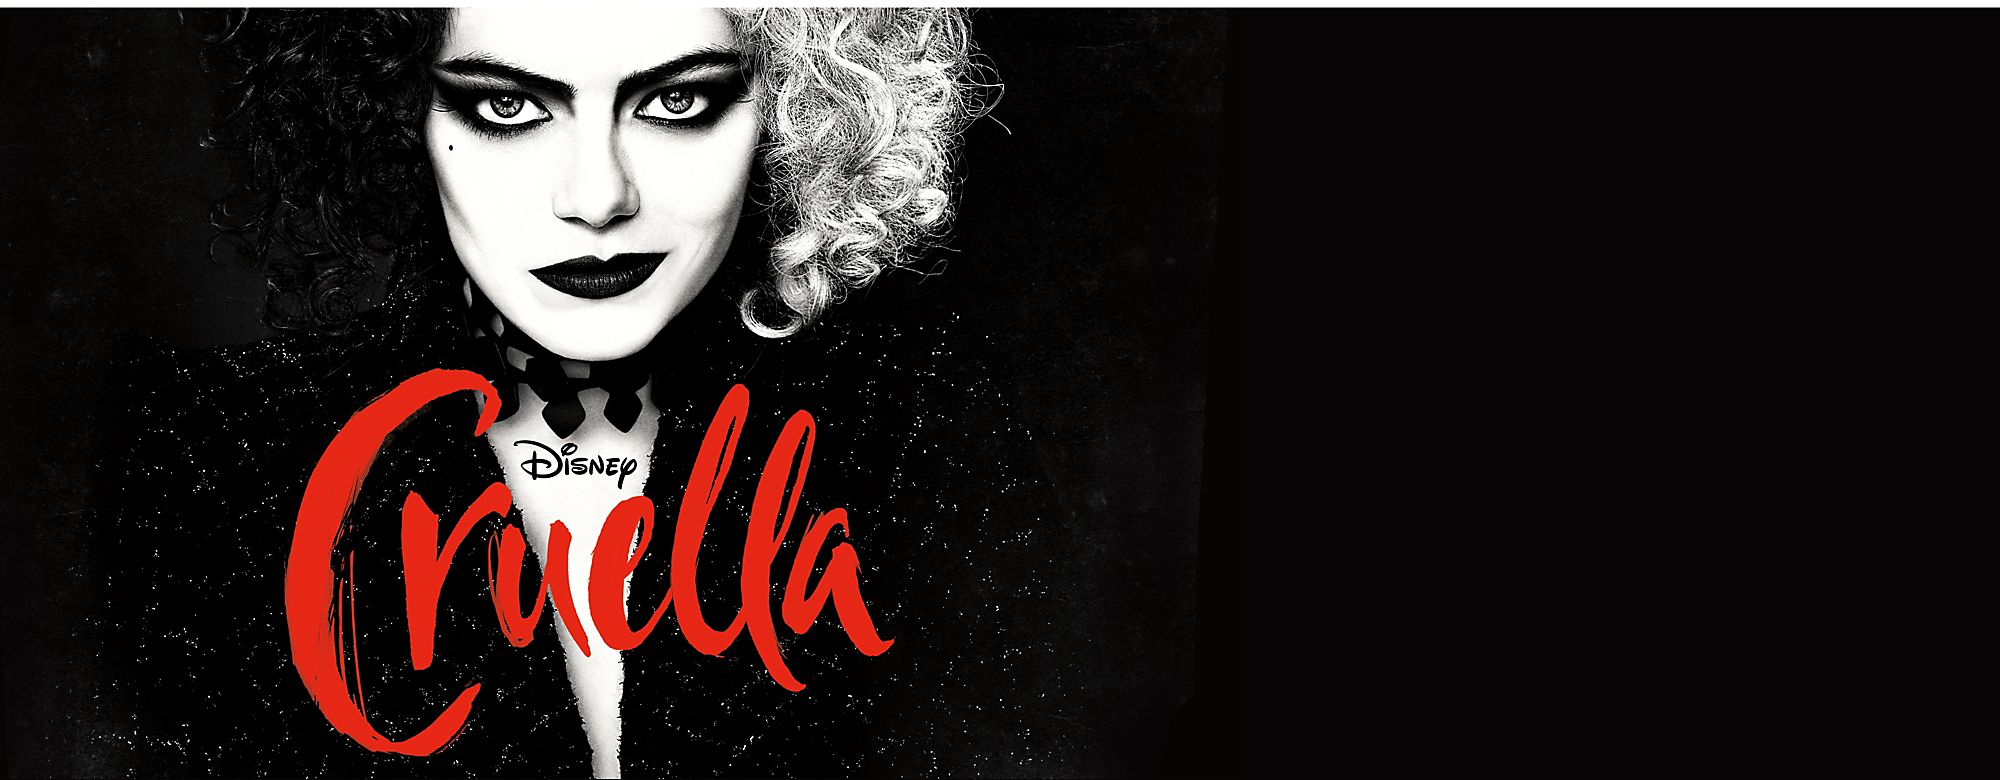 "Cruella In 1970s London, young fashion designer Estella de Vil becomes obsessed with dogs' skins, especially Dalmatians. Finding herself at the mercy of an uncaring employer, she reinvents herself as the vicious criminal known as ""Cruella"". Coming Soon"